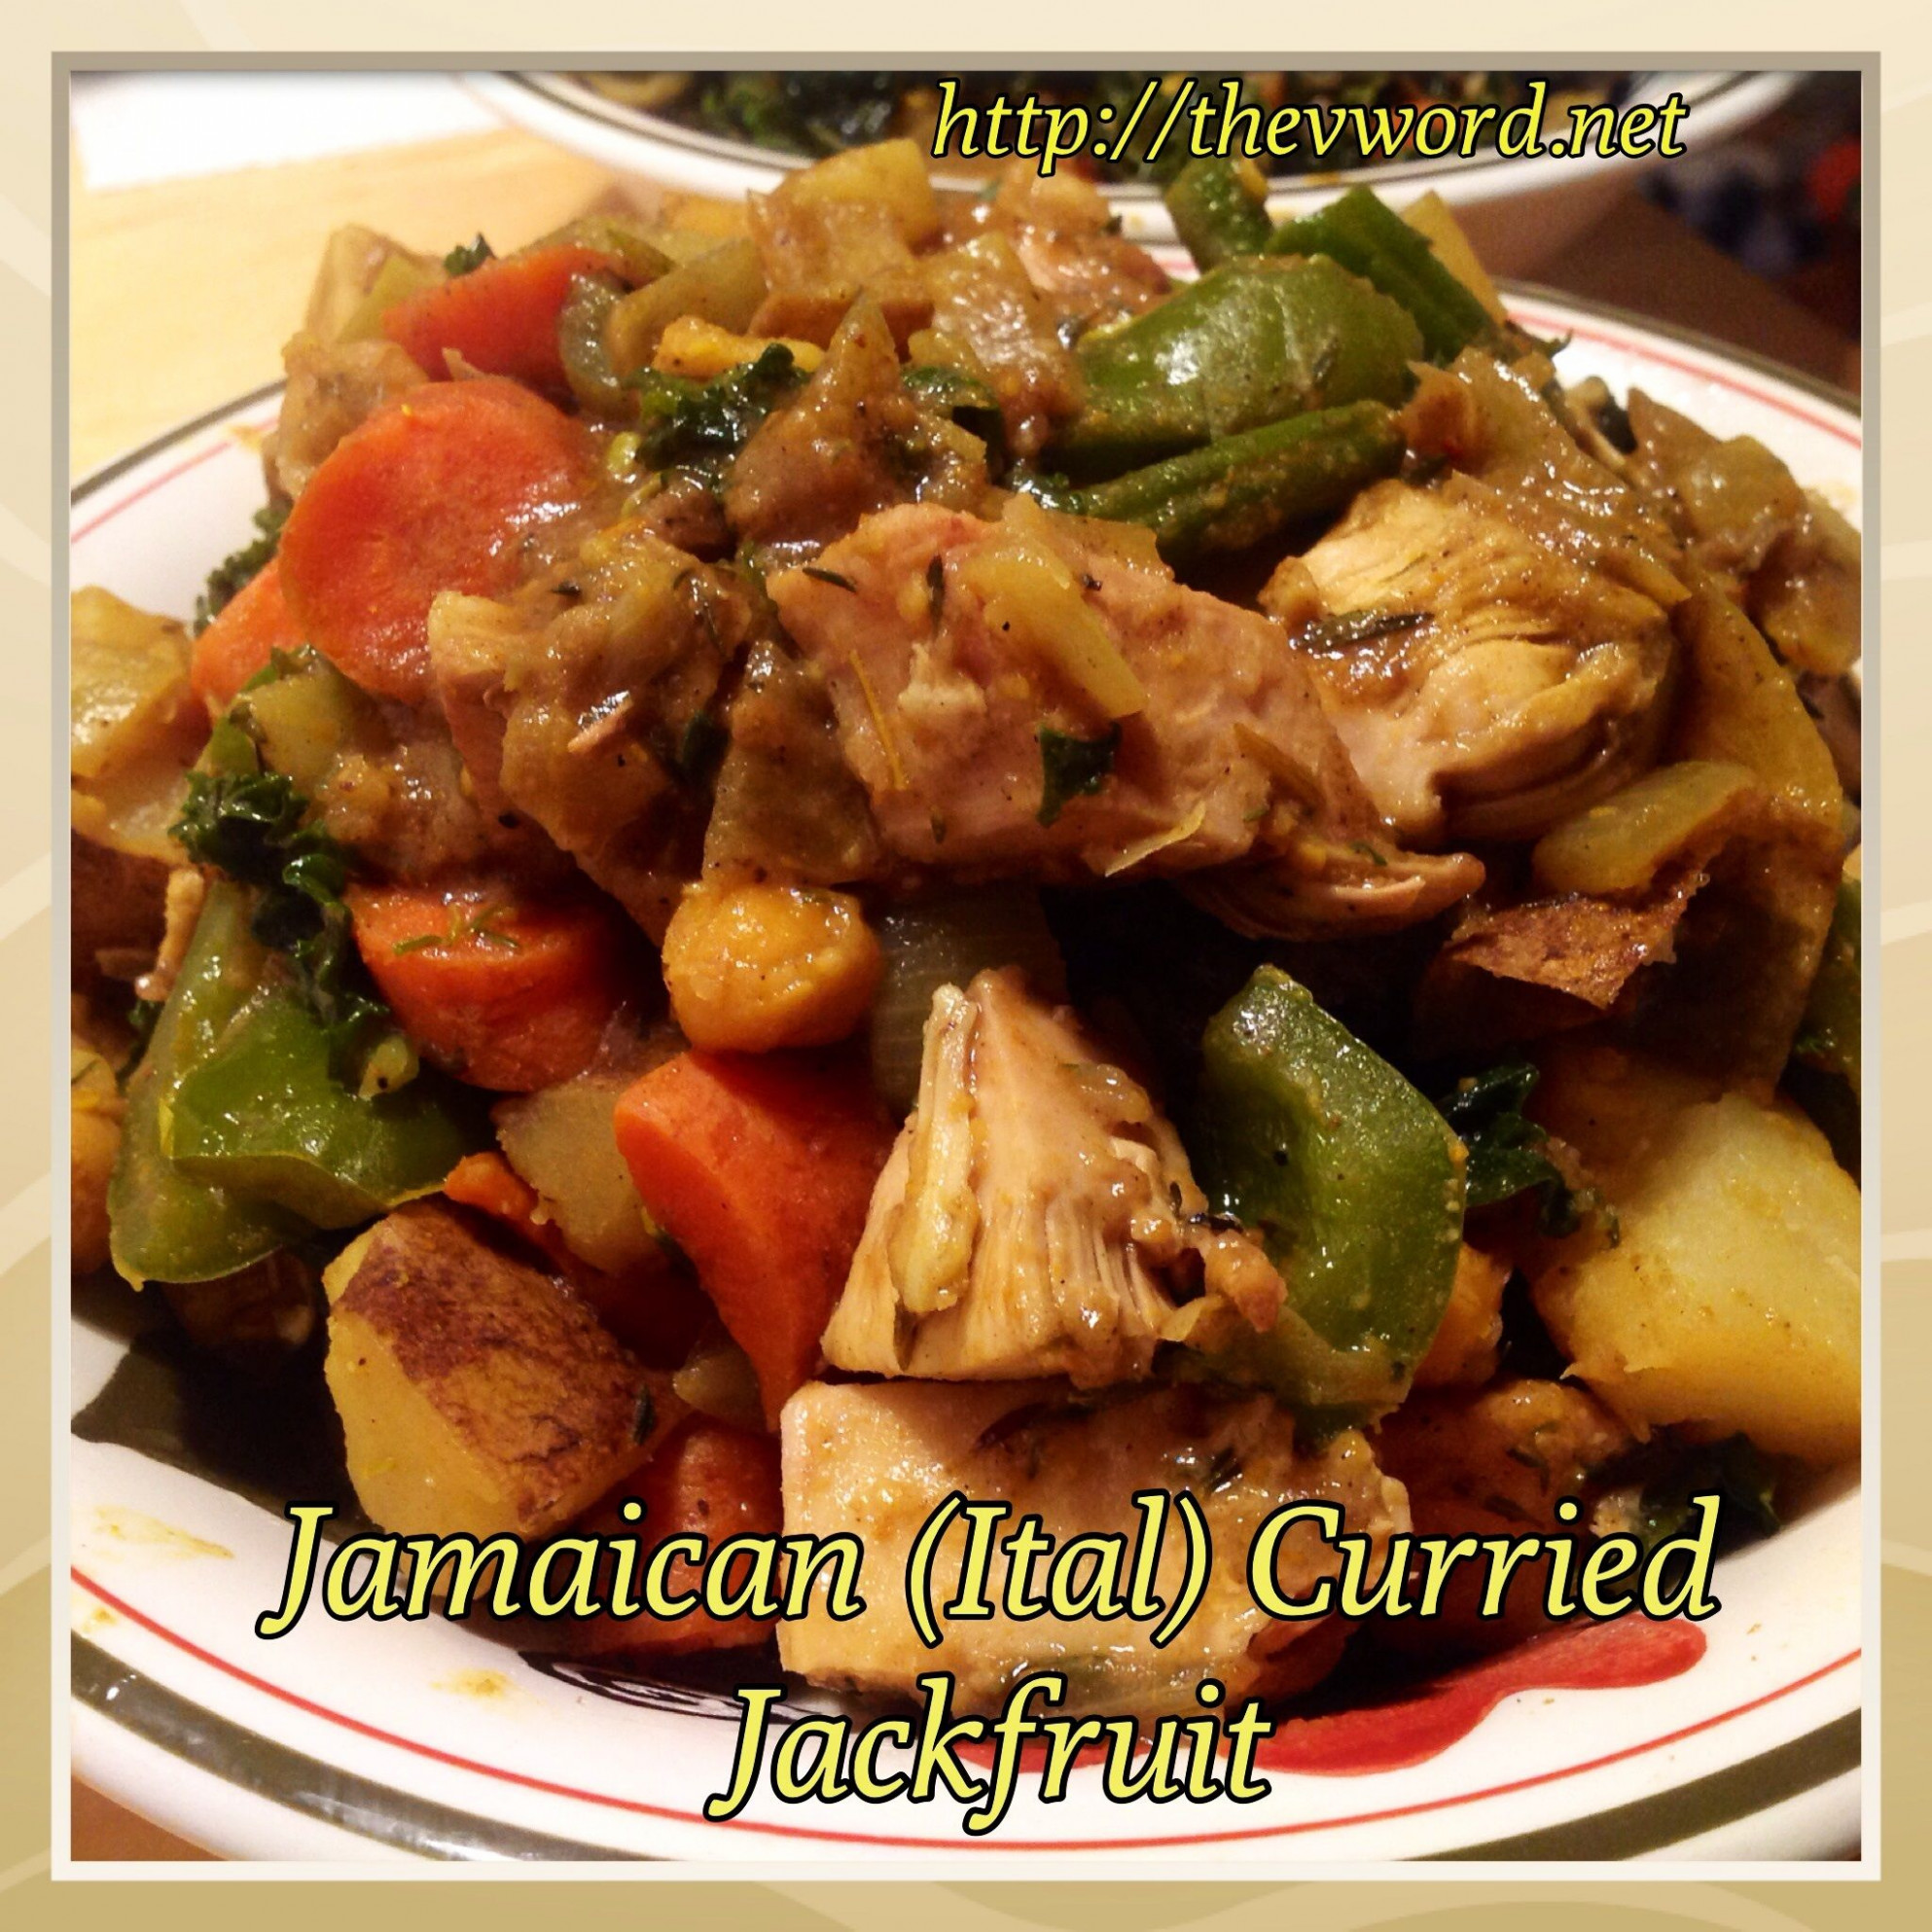 Jamaican (Ital) Curried Jackfruit with Chickpeas | Recipe ..